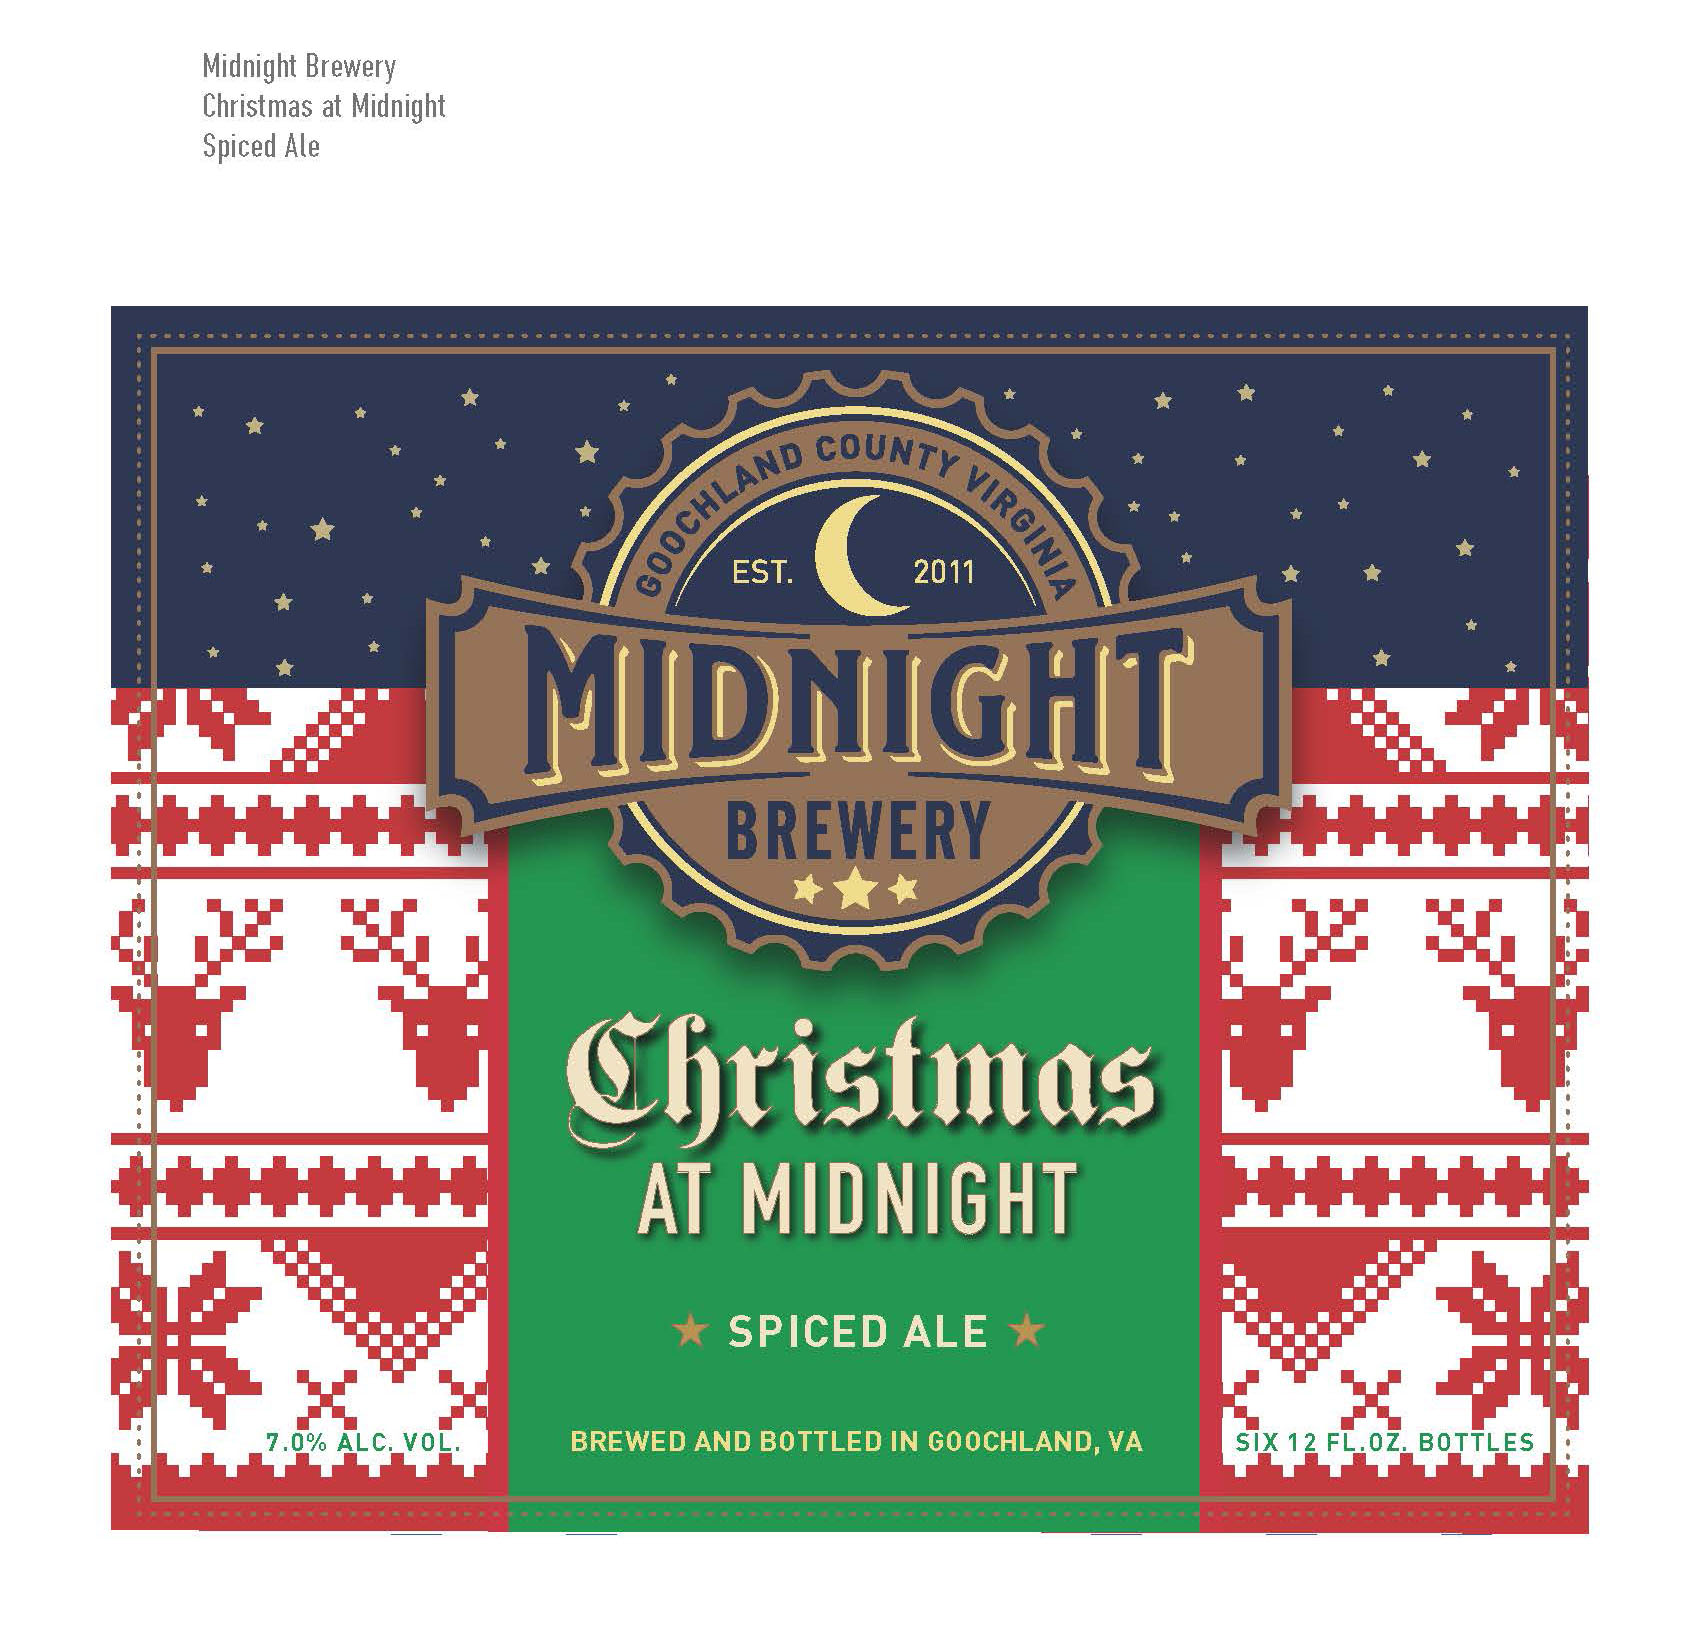 MB-023_ChristmasatMidnight_carrier Mockup.jpg